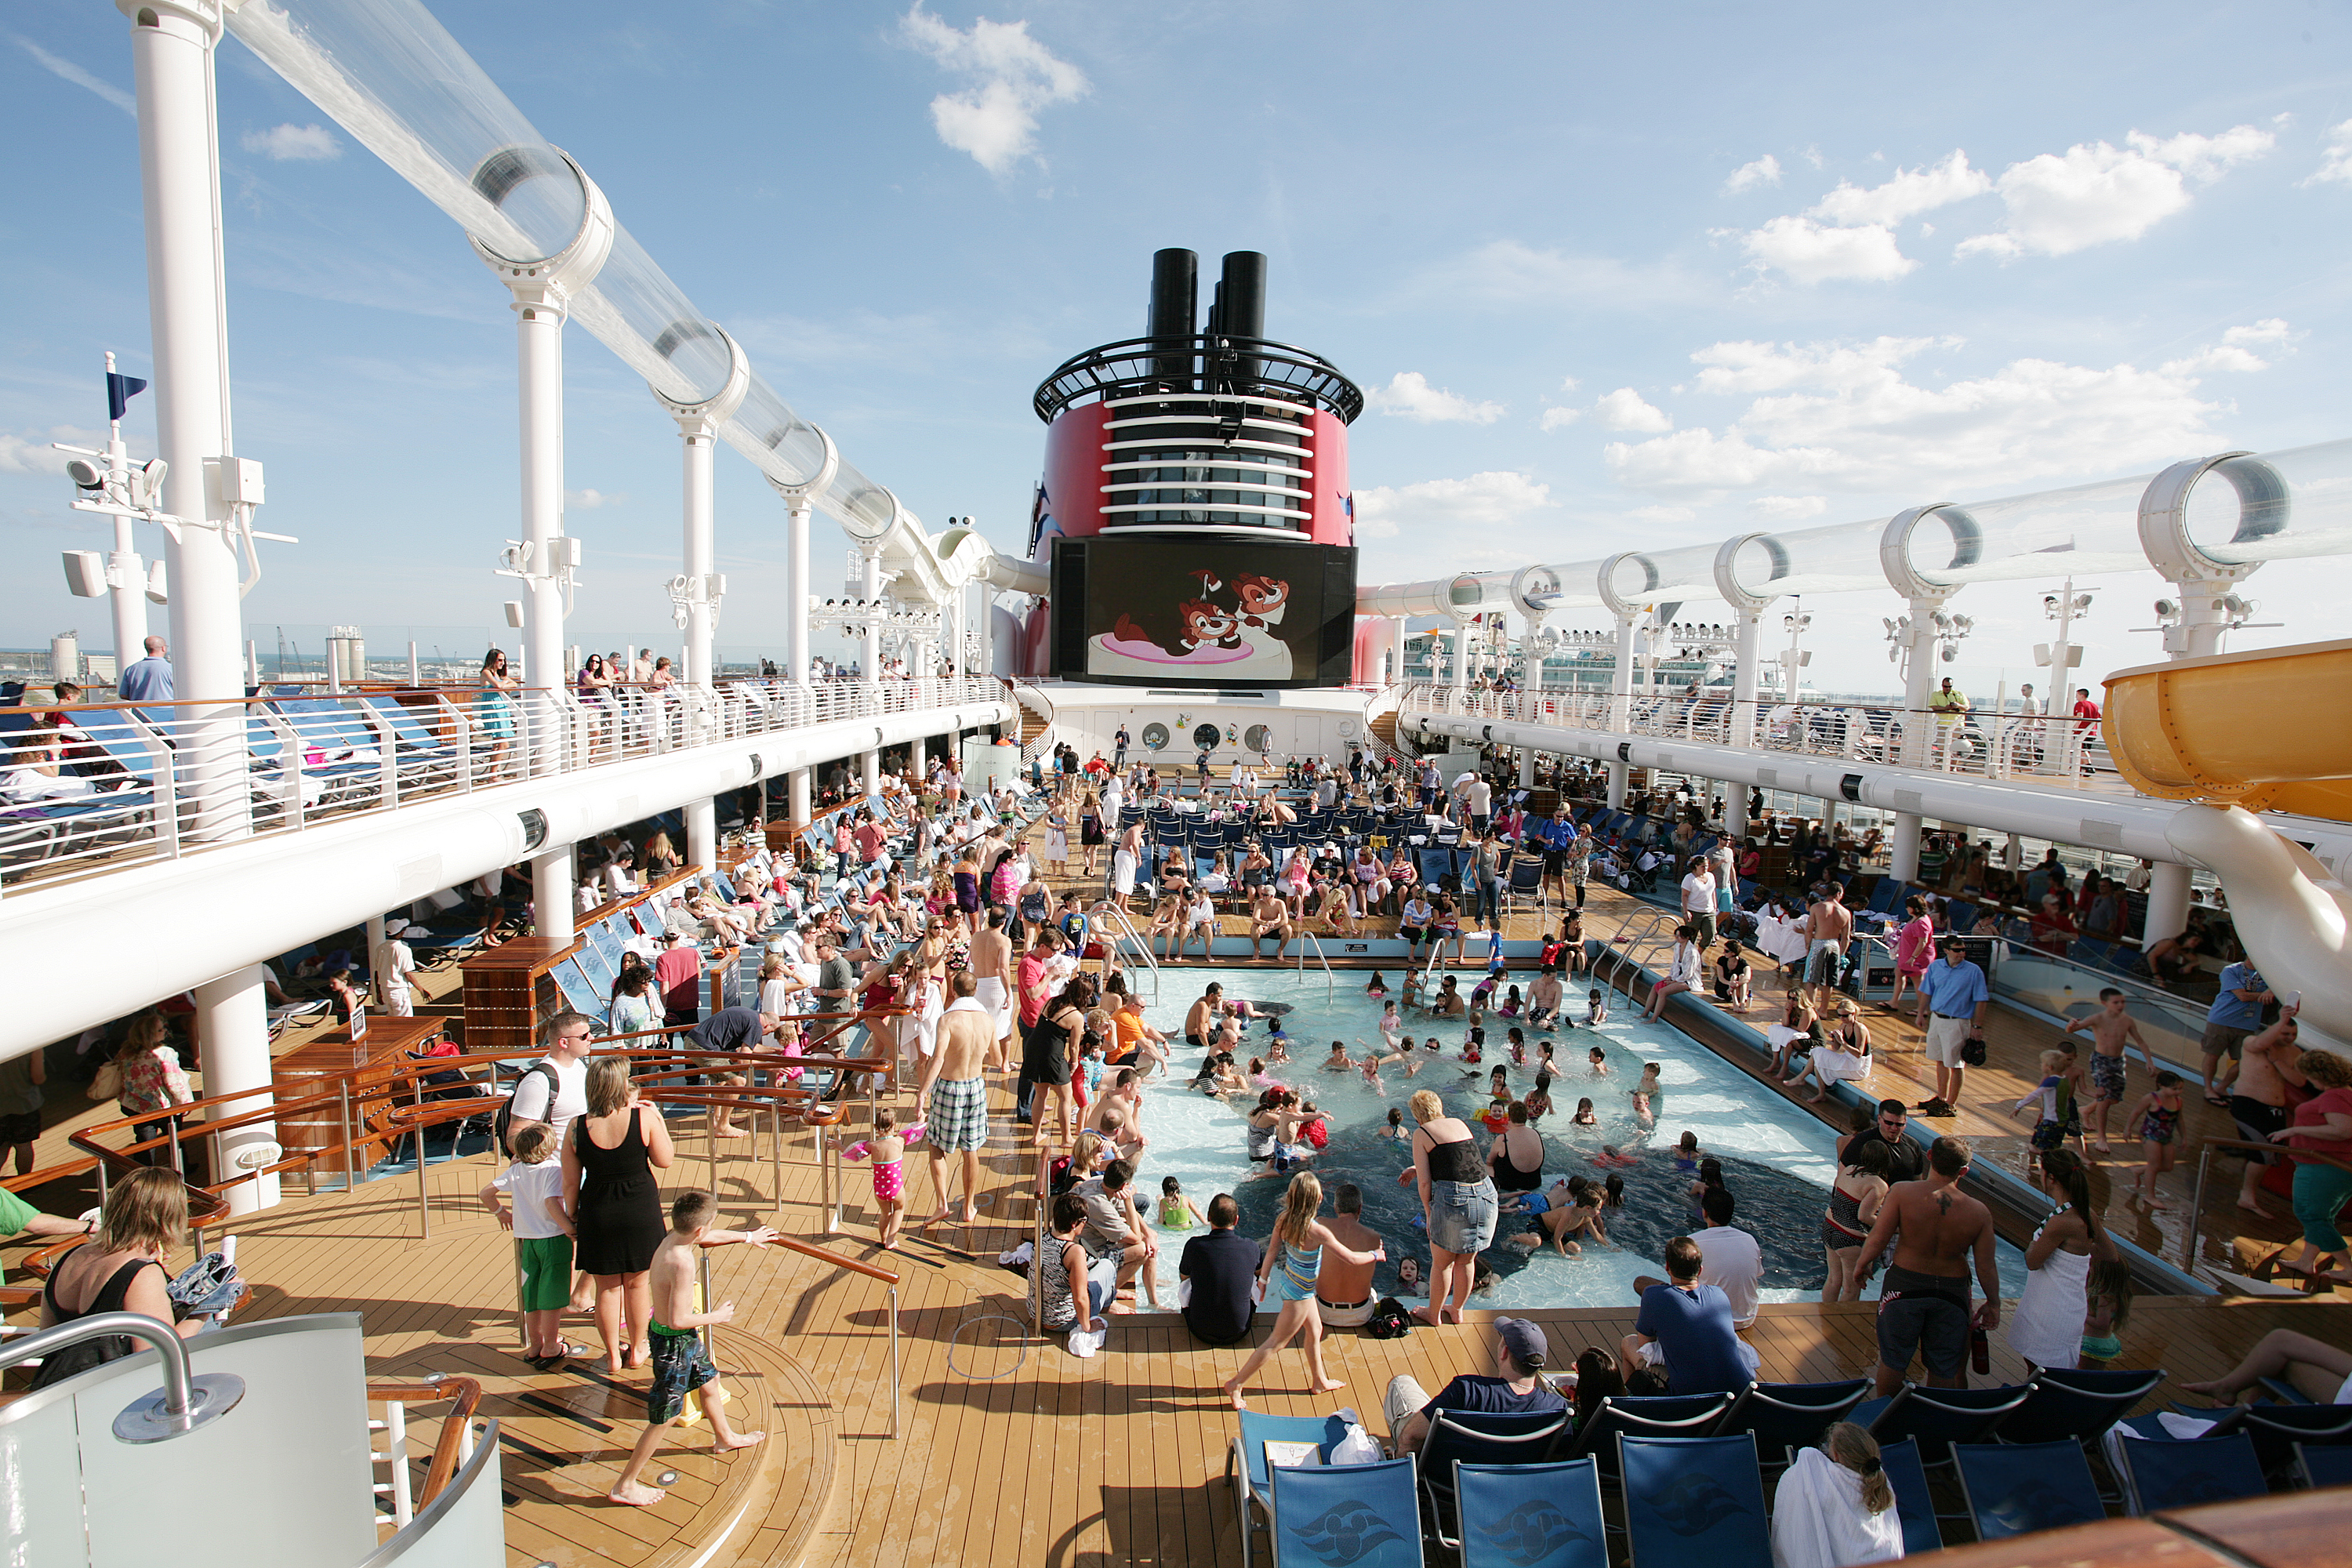 disney cruise 2019 schedule - 1000×667